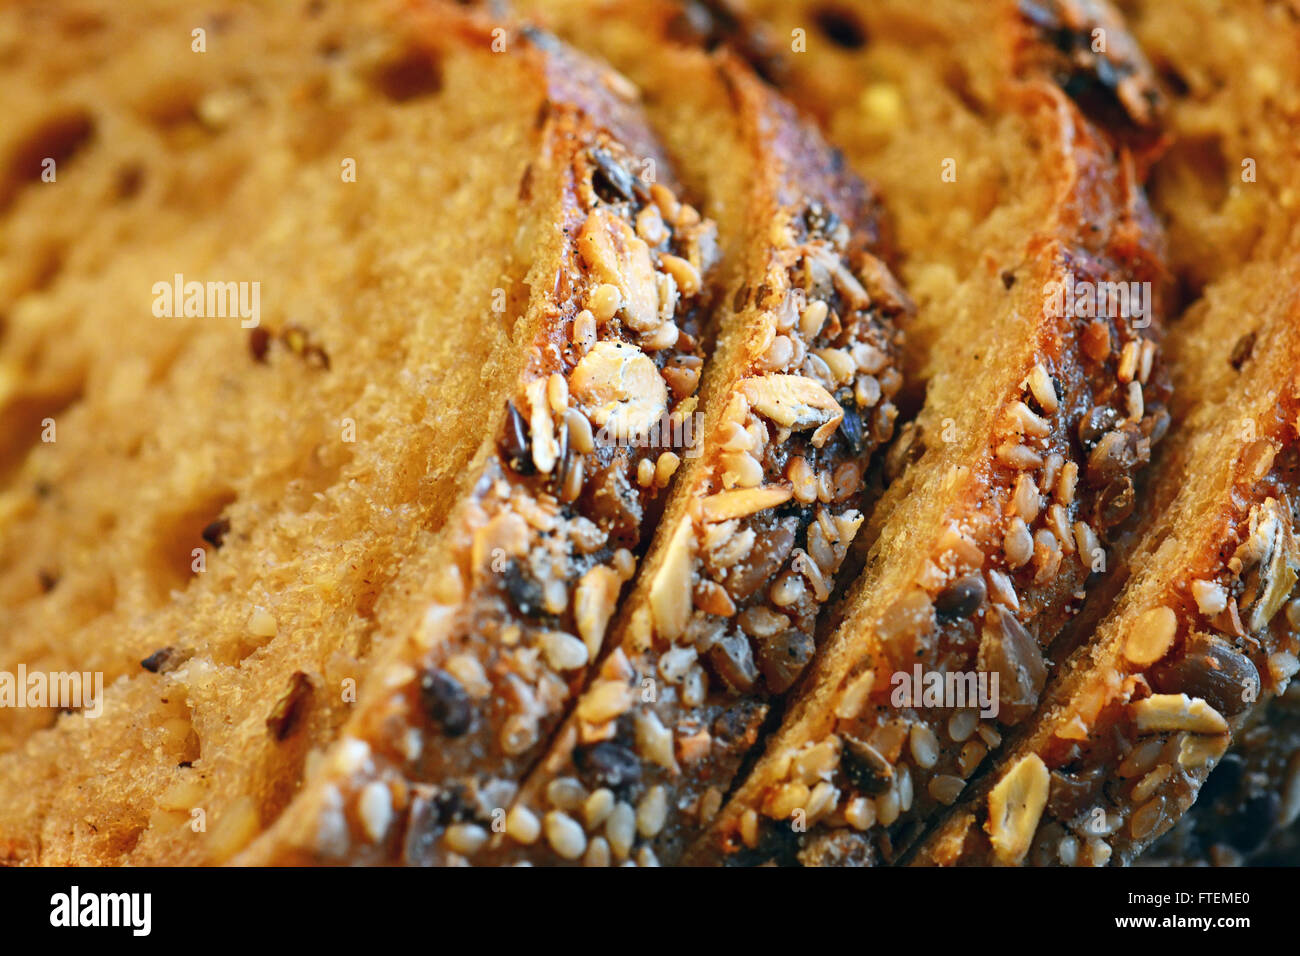 Grained bread slices, Close up - Stock Image